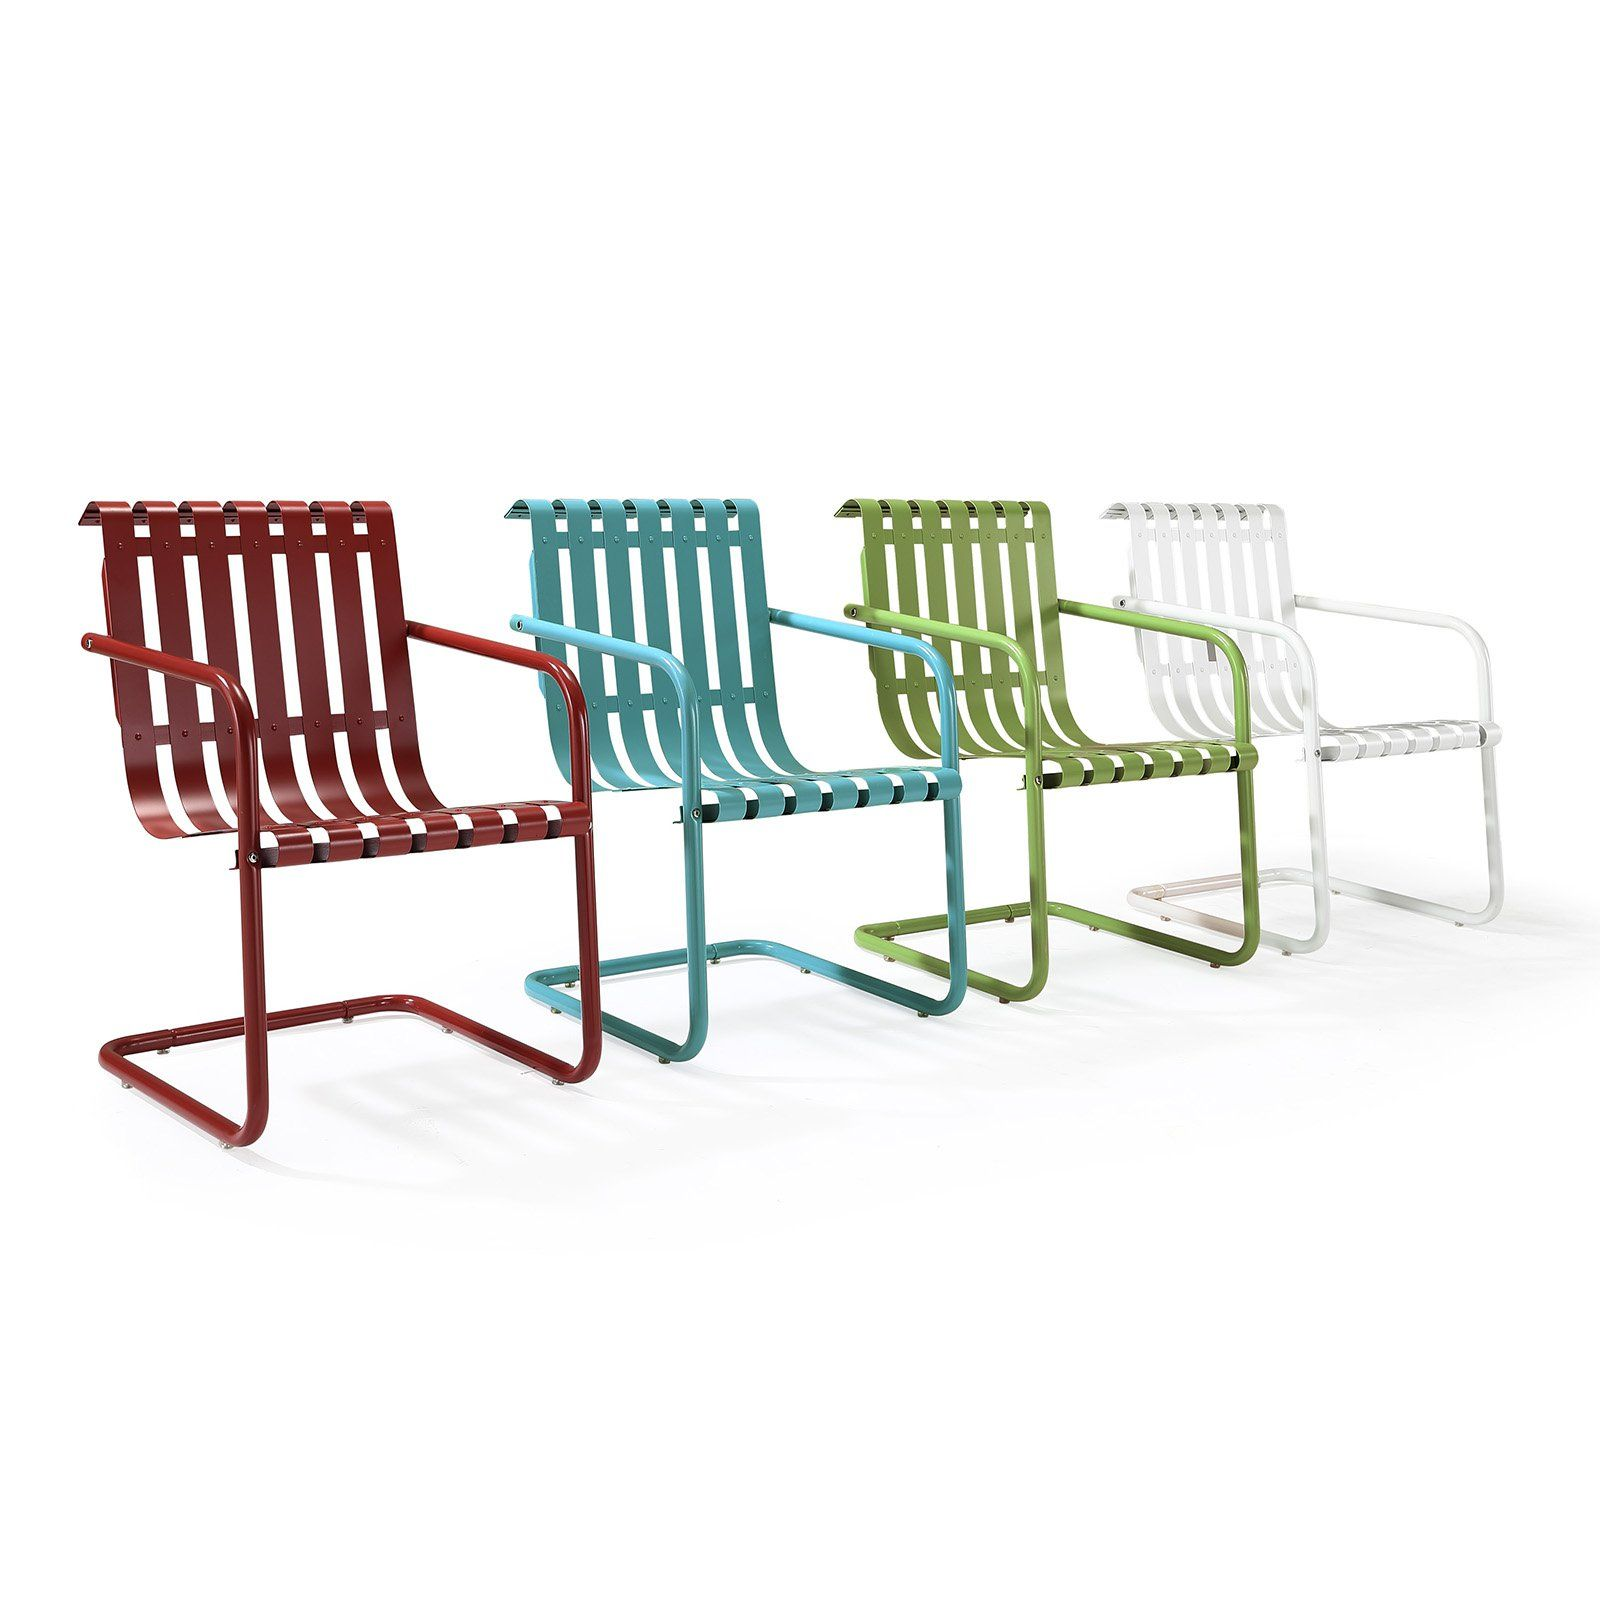 Crosley Gracie Retro Spring Chair Bounce Away Your Cares After A Long Day With The Comfortable Crosley Gracie Retro Spring Chair Beauti Outdoor Rocking Chairs